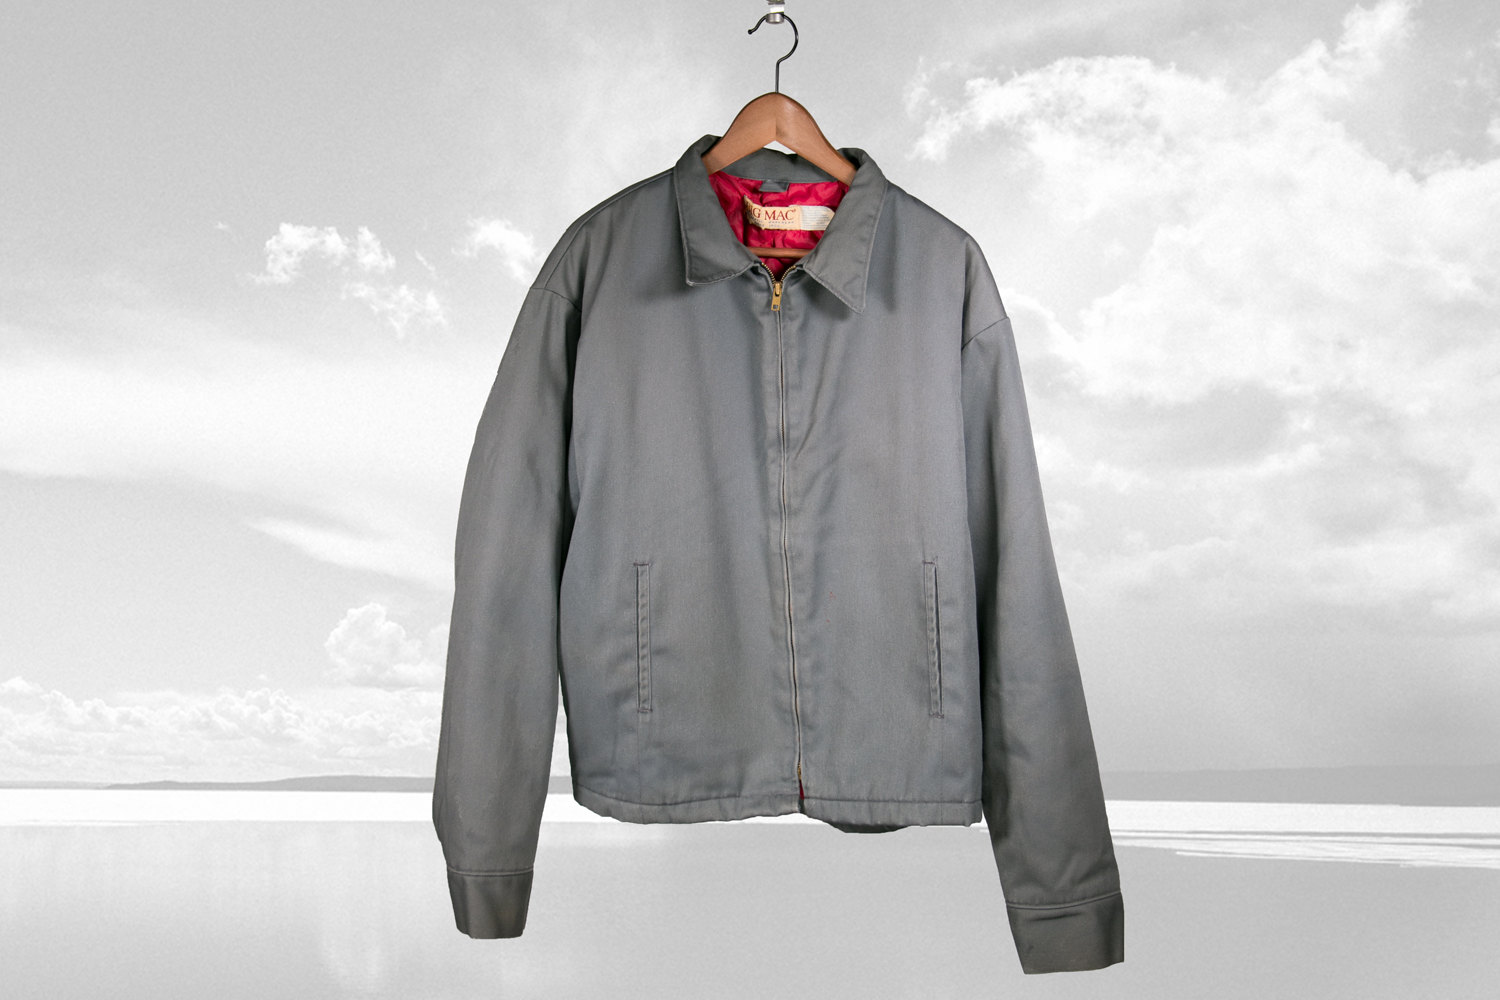 Vintage Big Mac Mechanic / Worker's Jacket, Grey and Red, Quilt lined